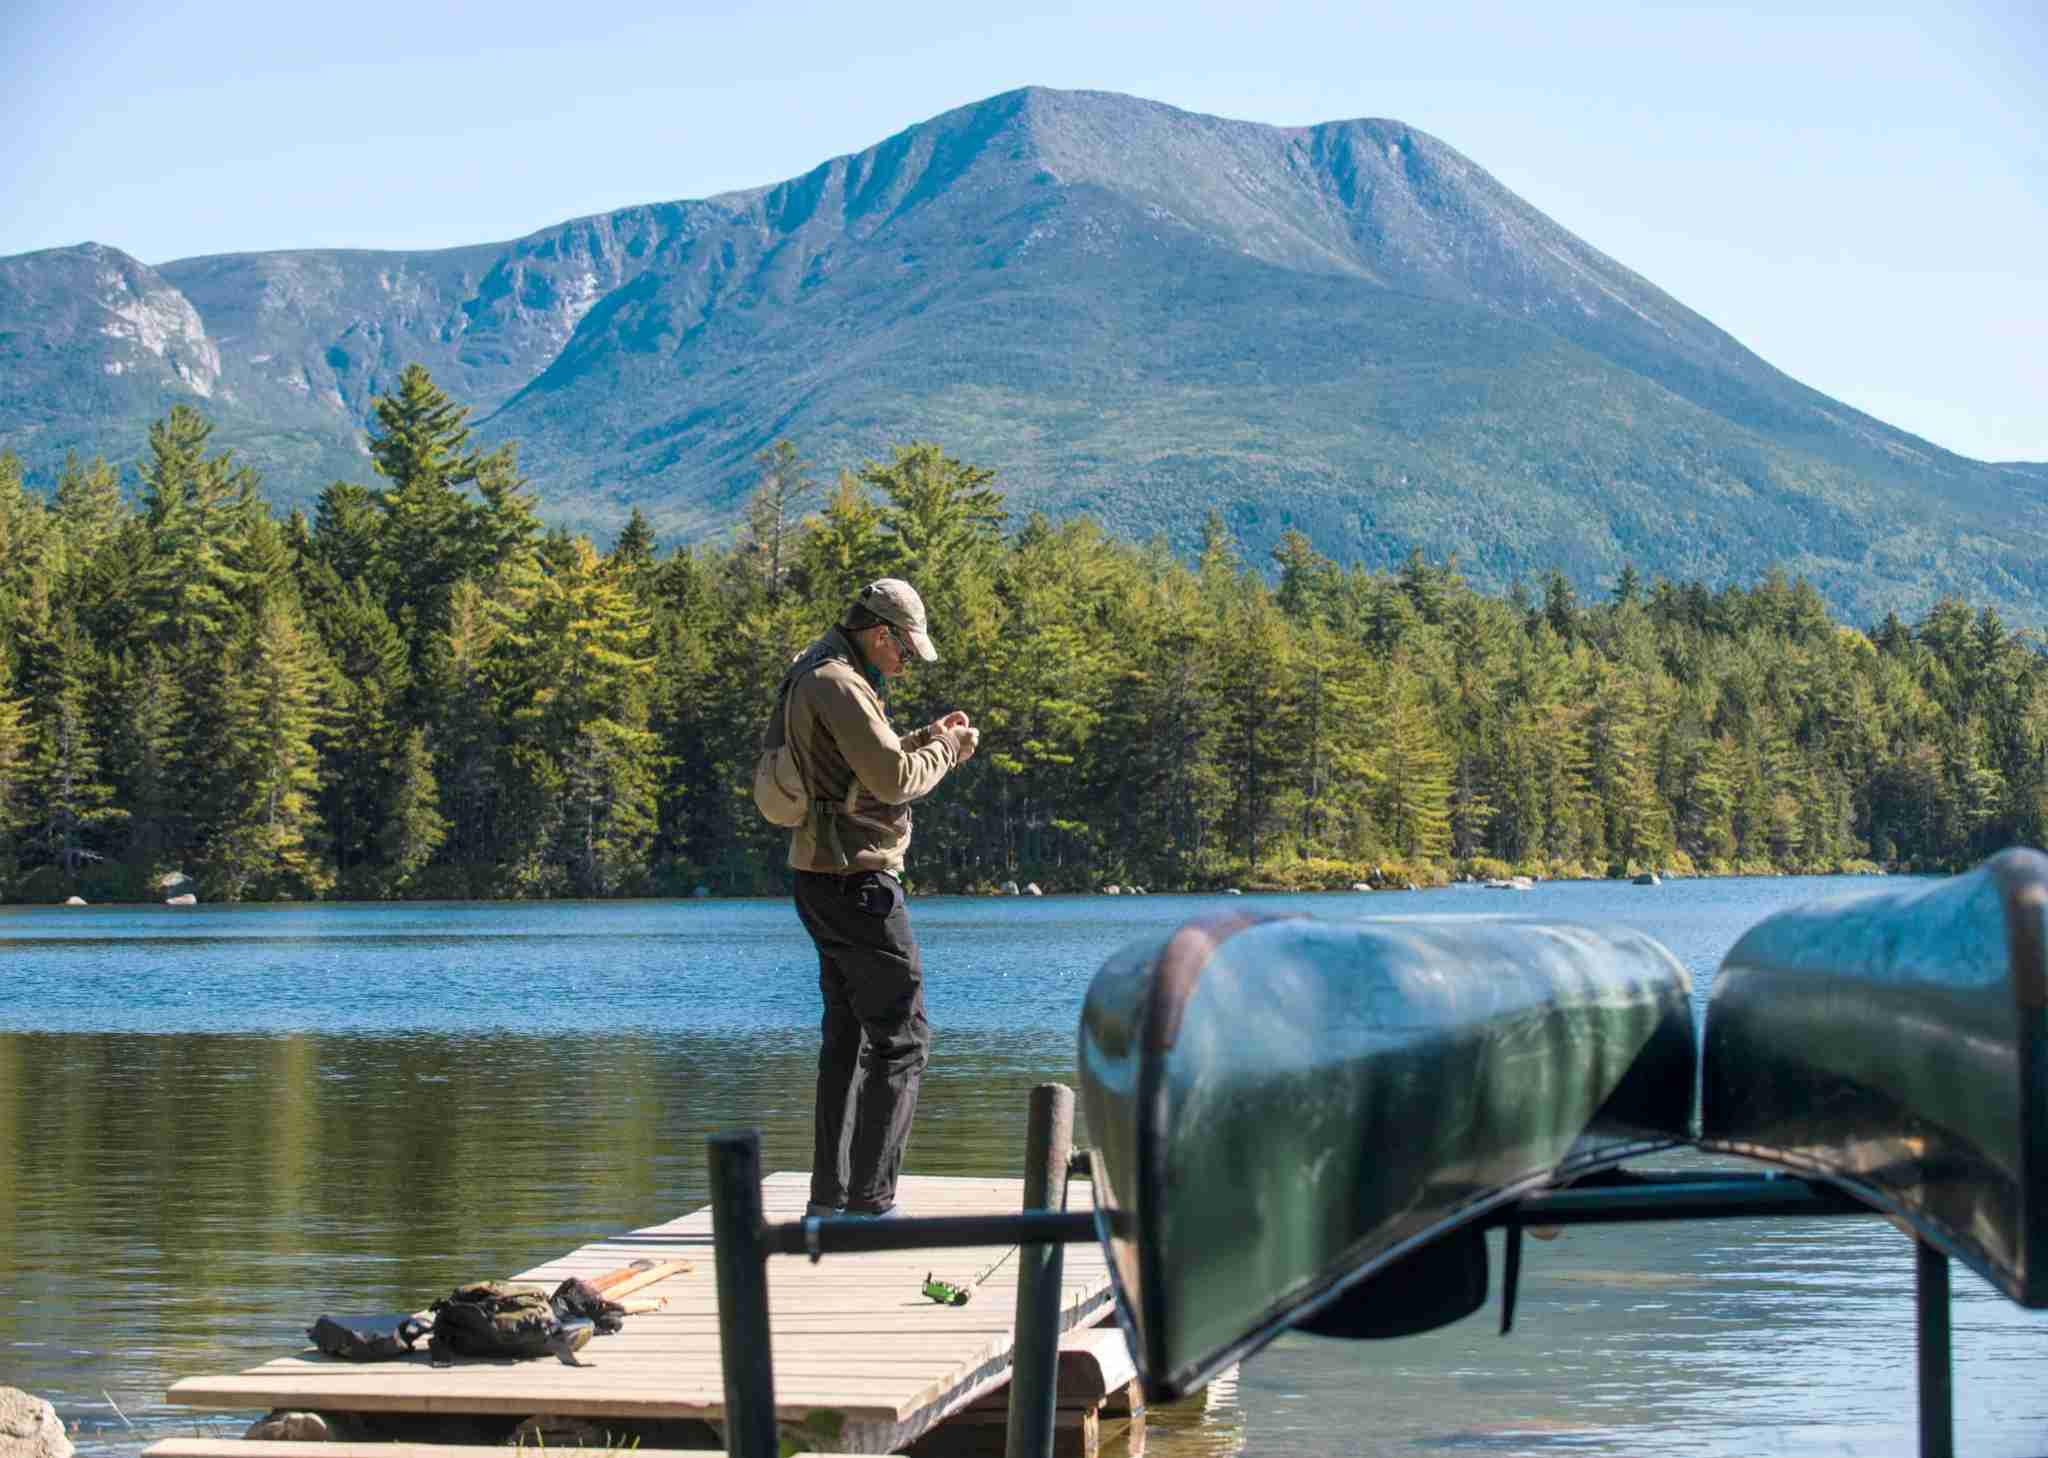 Fly fisherman at Kidney Pond in Baxter State Park, Maine. (Photo by Joe Klementovich/Getty Images)